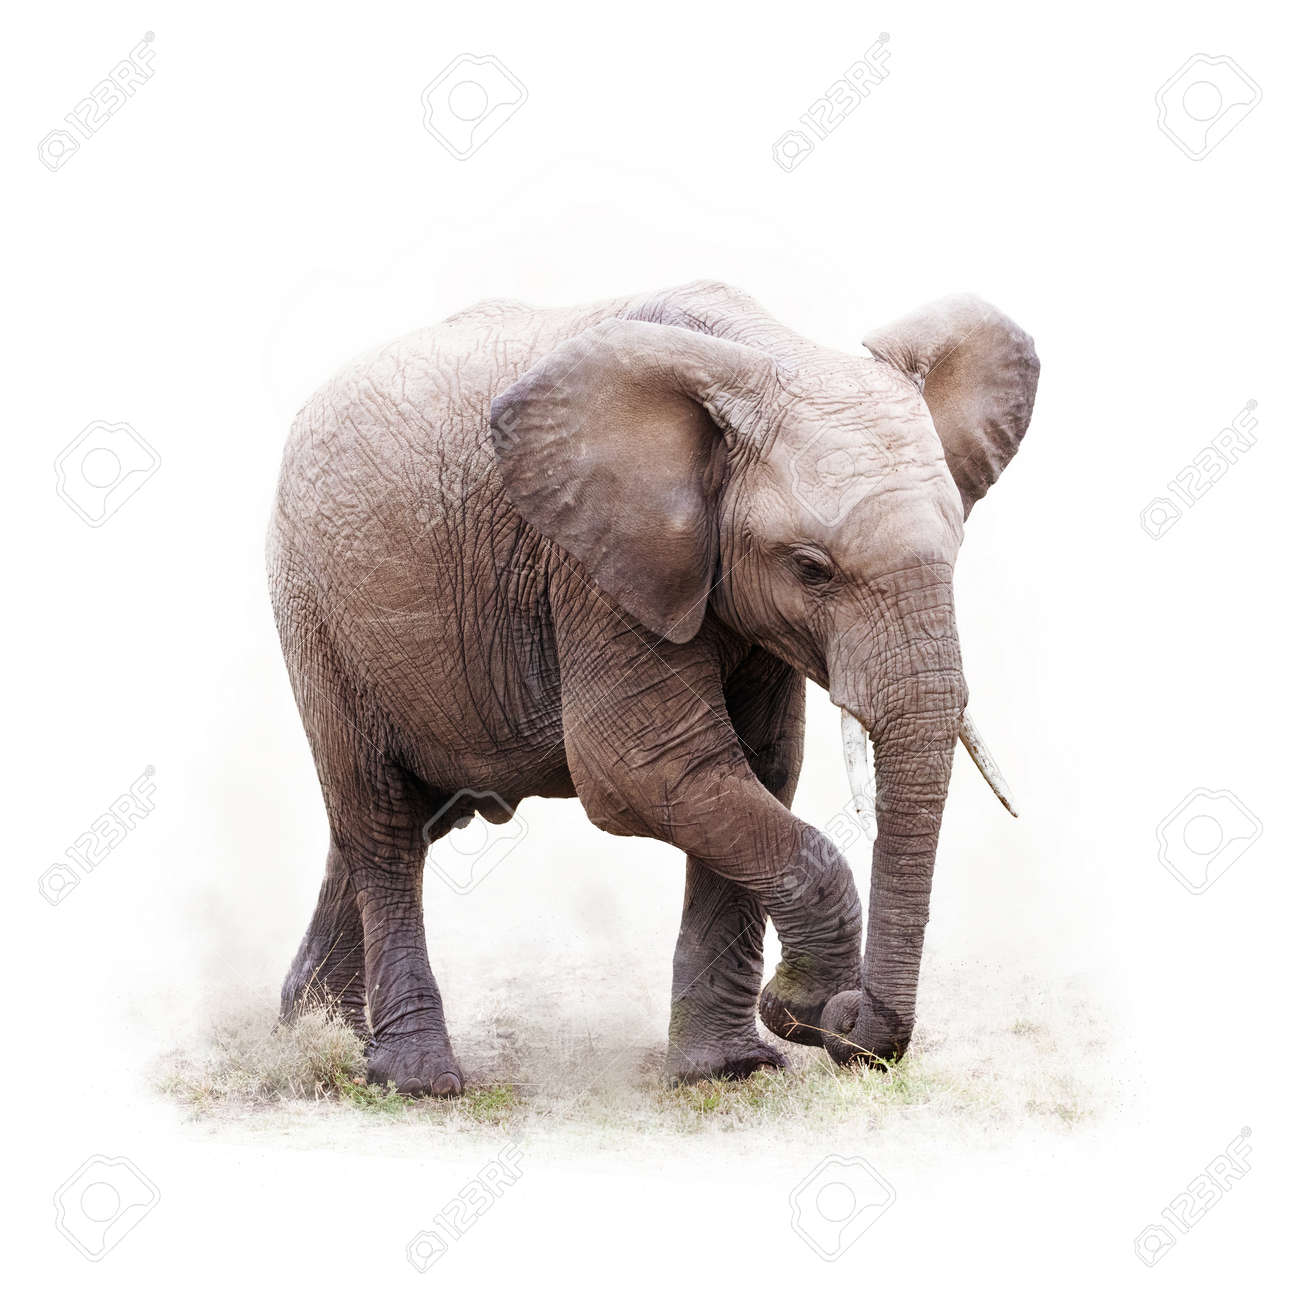 Baby African elephant walking. Isoalted on white with square crop. - 94258285